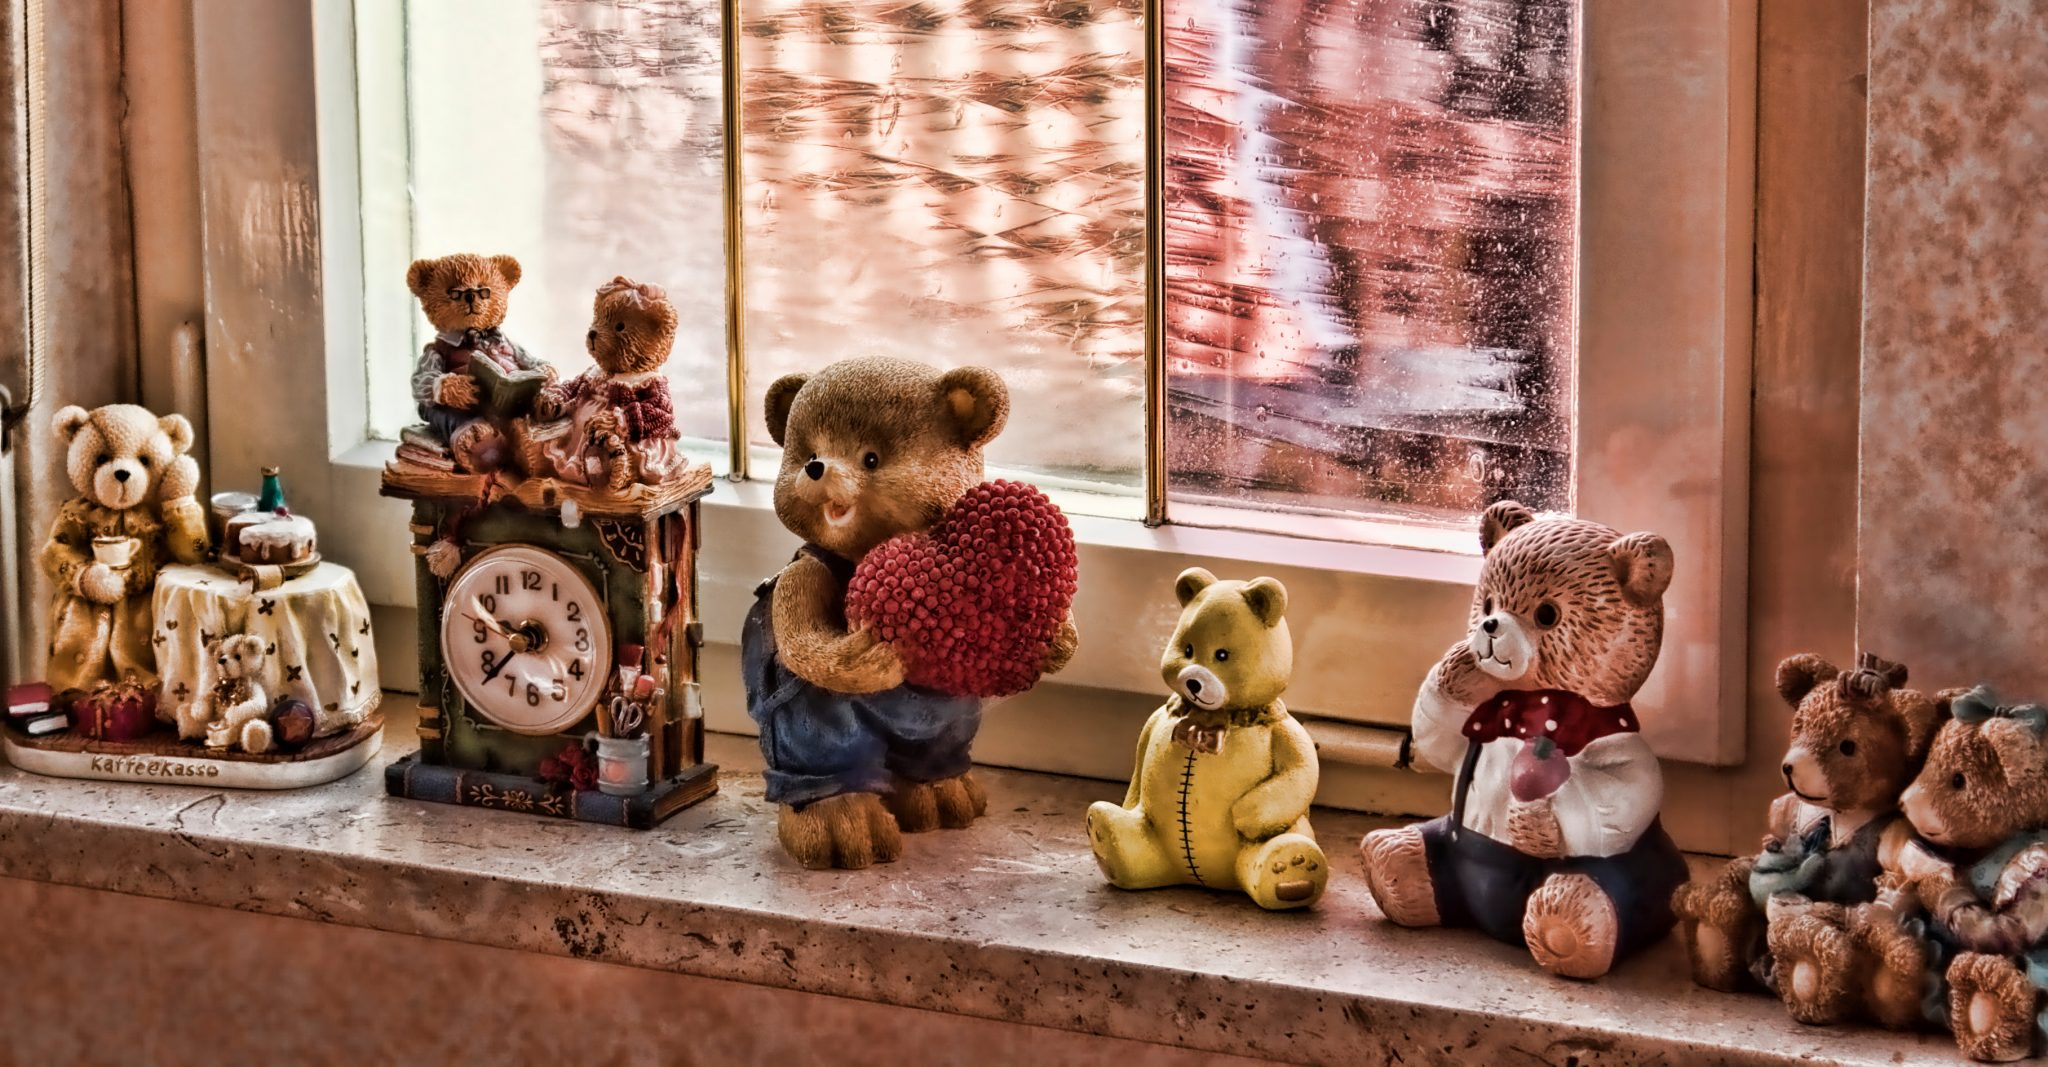 Toys: Teddy bears in Germany